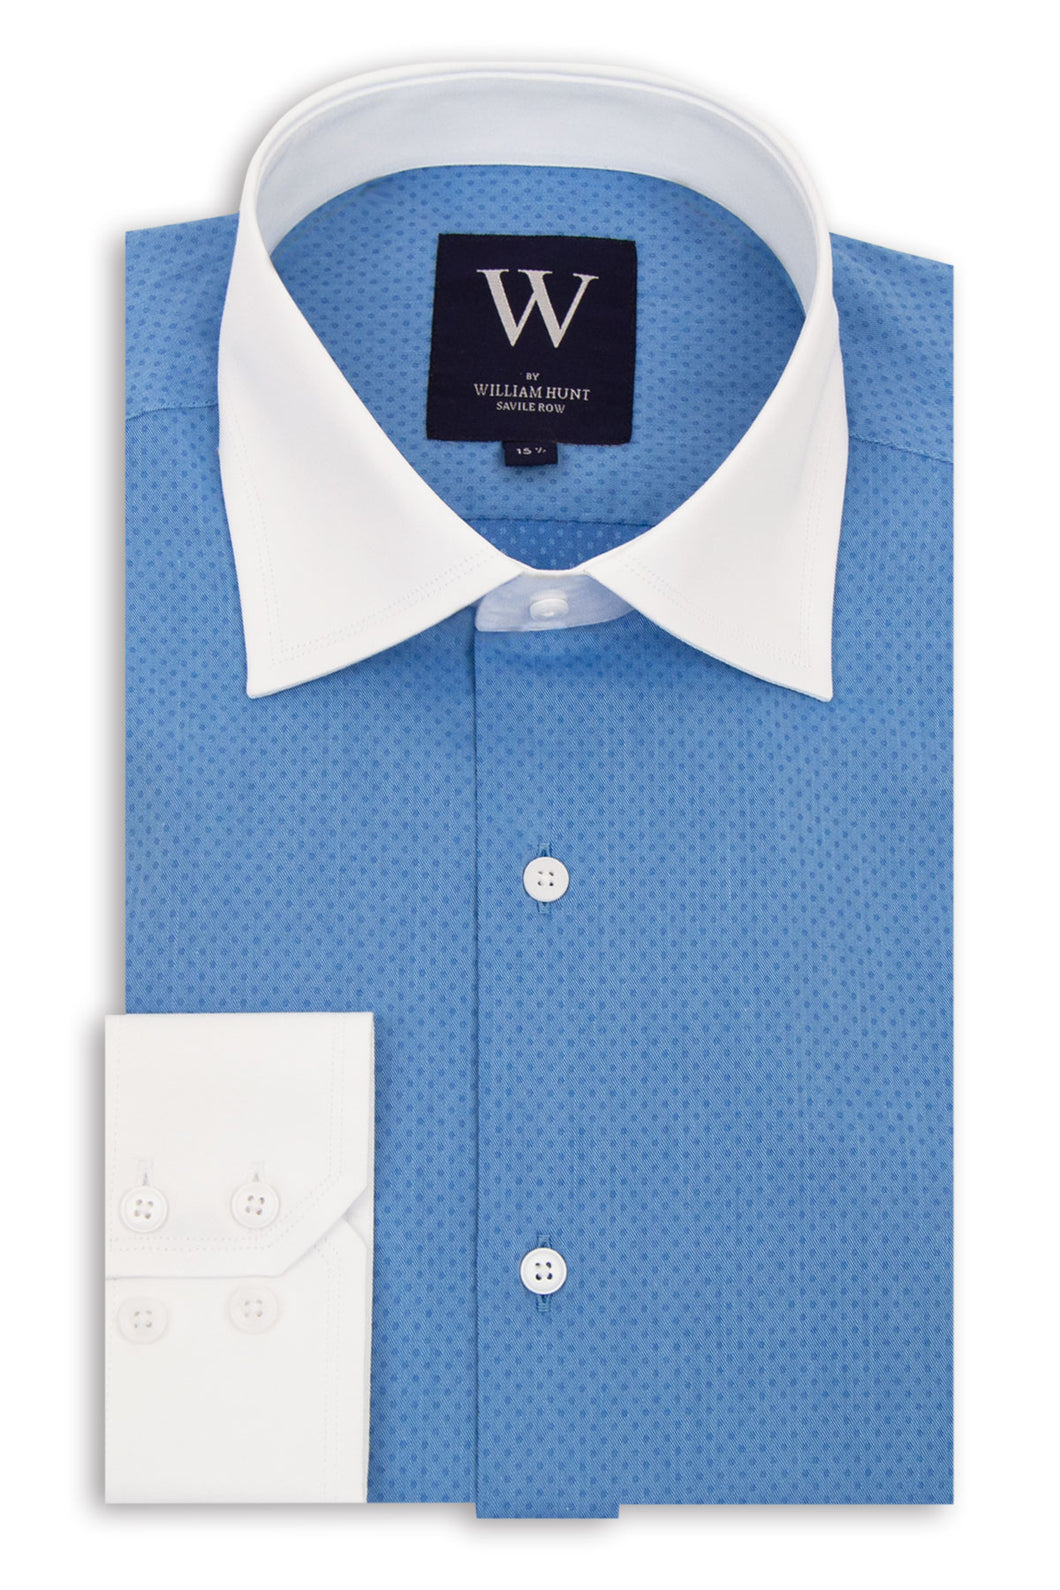 Blue Cutaway Collar Shirt with Blue Pin Dot